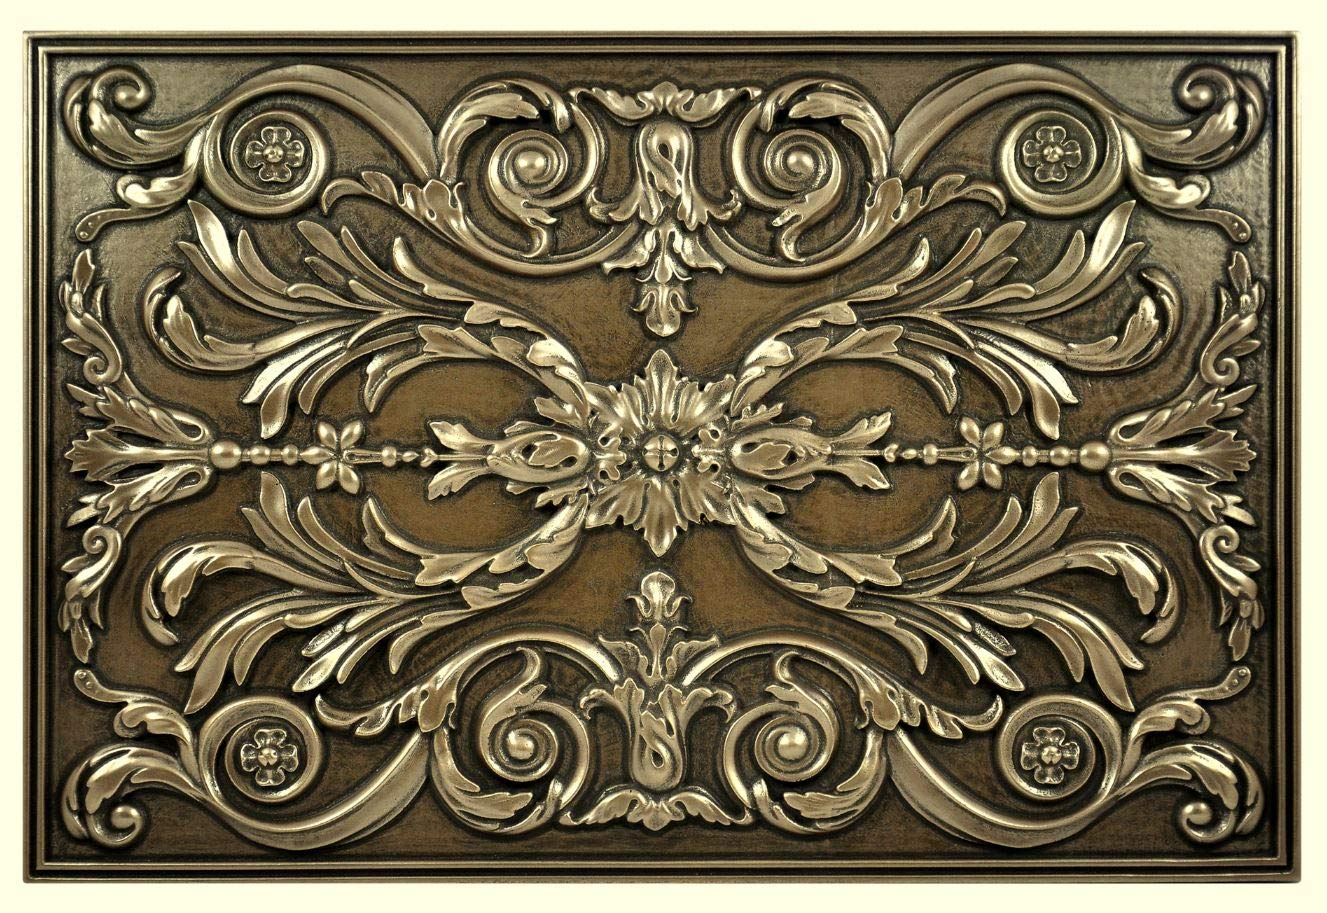 Fireplace Wall Accent Metal Resin Mural Plaque Tile Crown Metal MURAL Oil Rubbed Venetian Bronze Hand Made Finish 12x12 Kitchen Backsplash Medallion or Bathroom